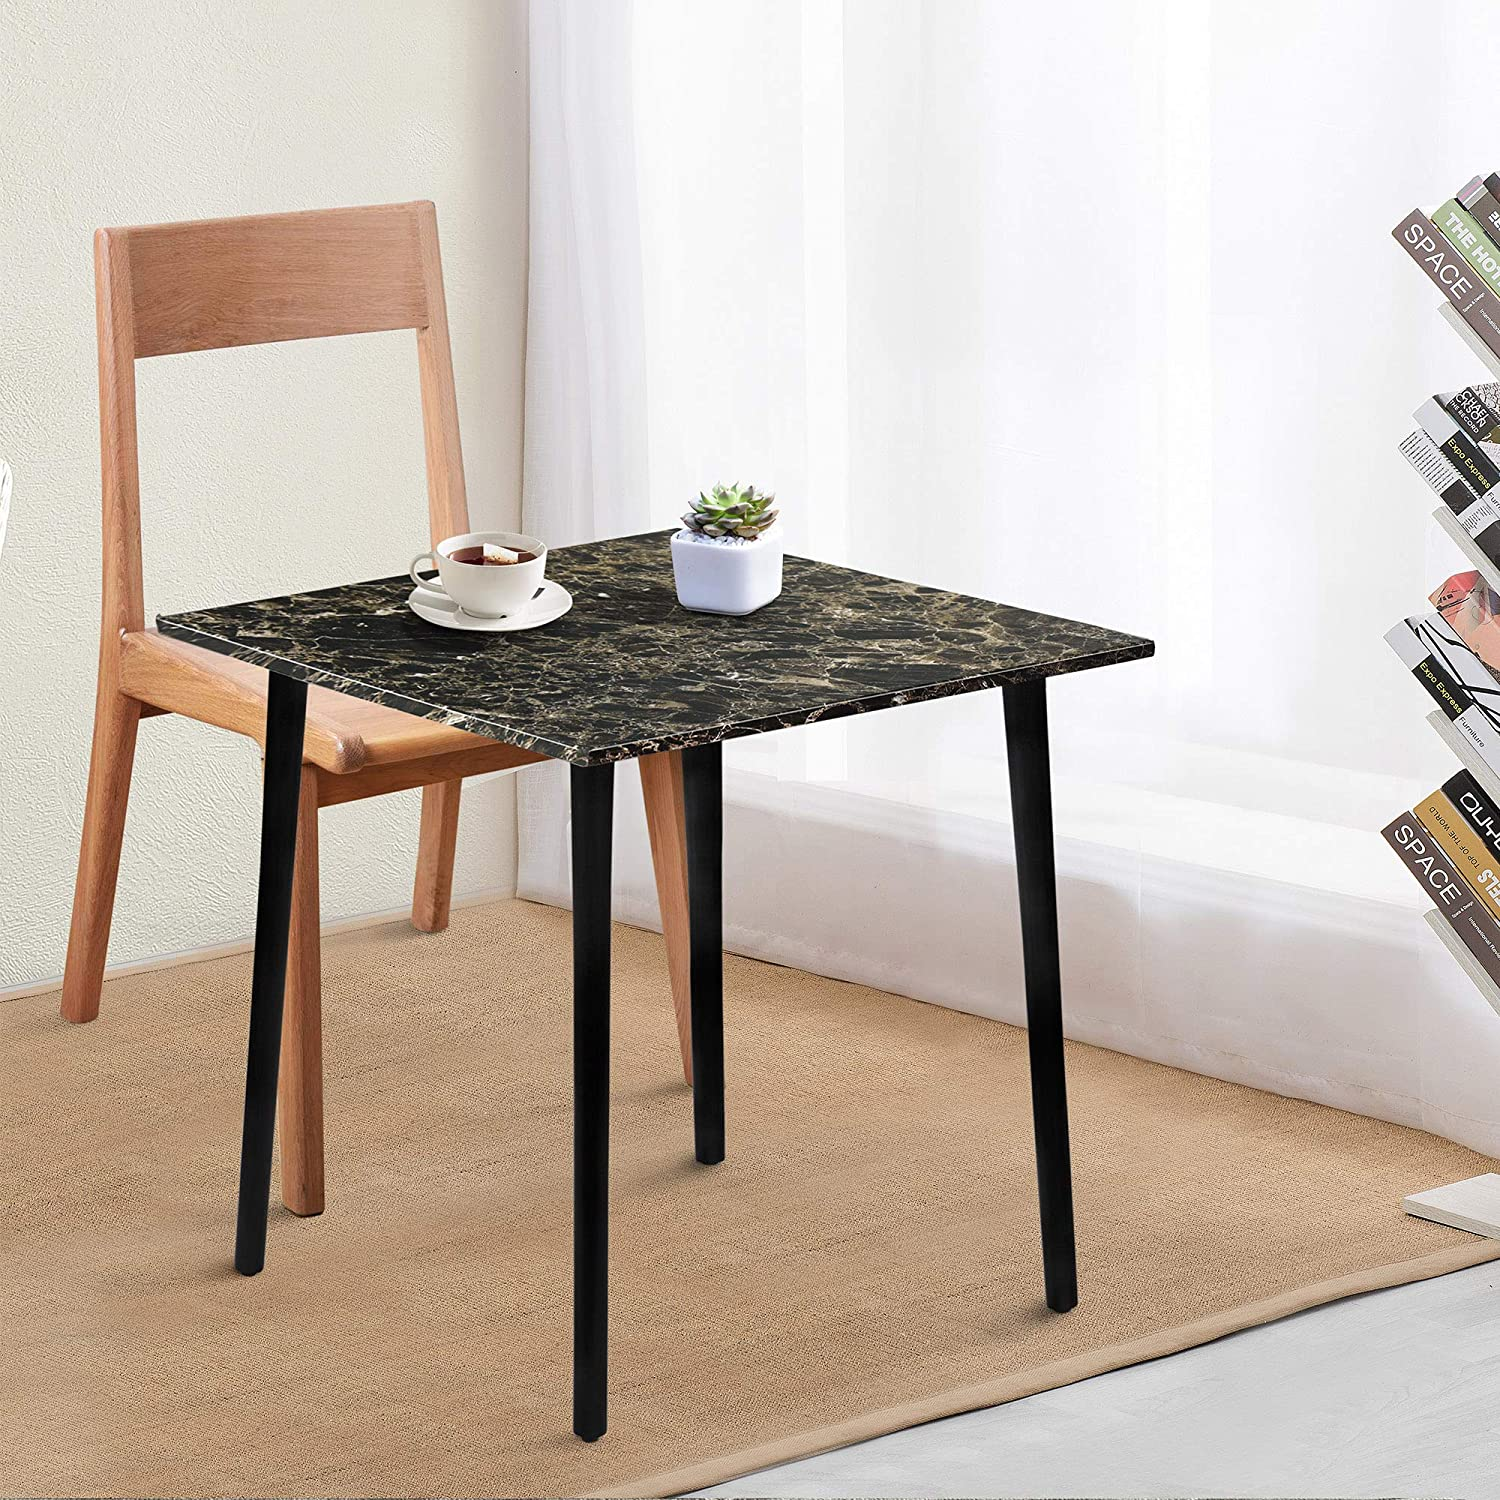 Amazon Com Primasleep Square Dining Table With Faux Marble Top Black Brown Tables